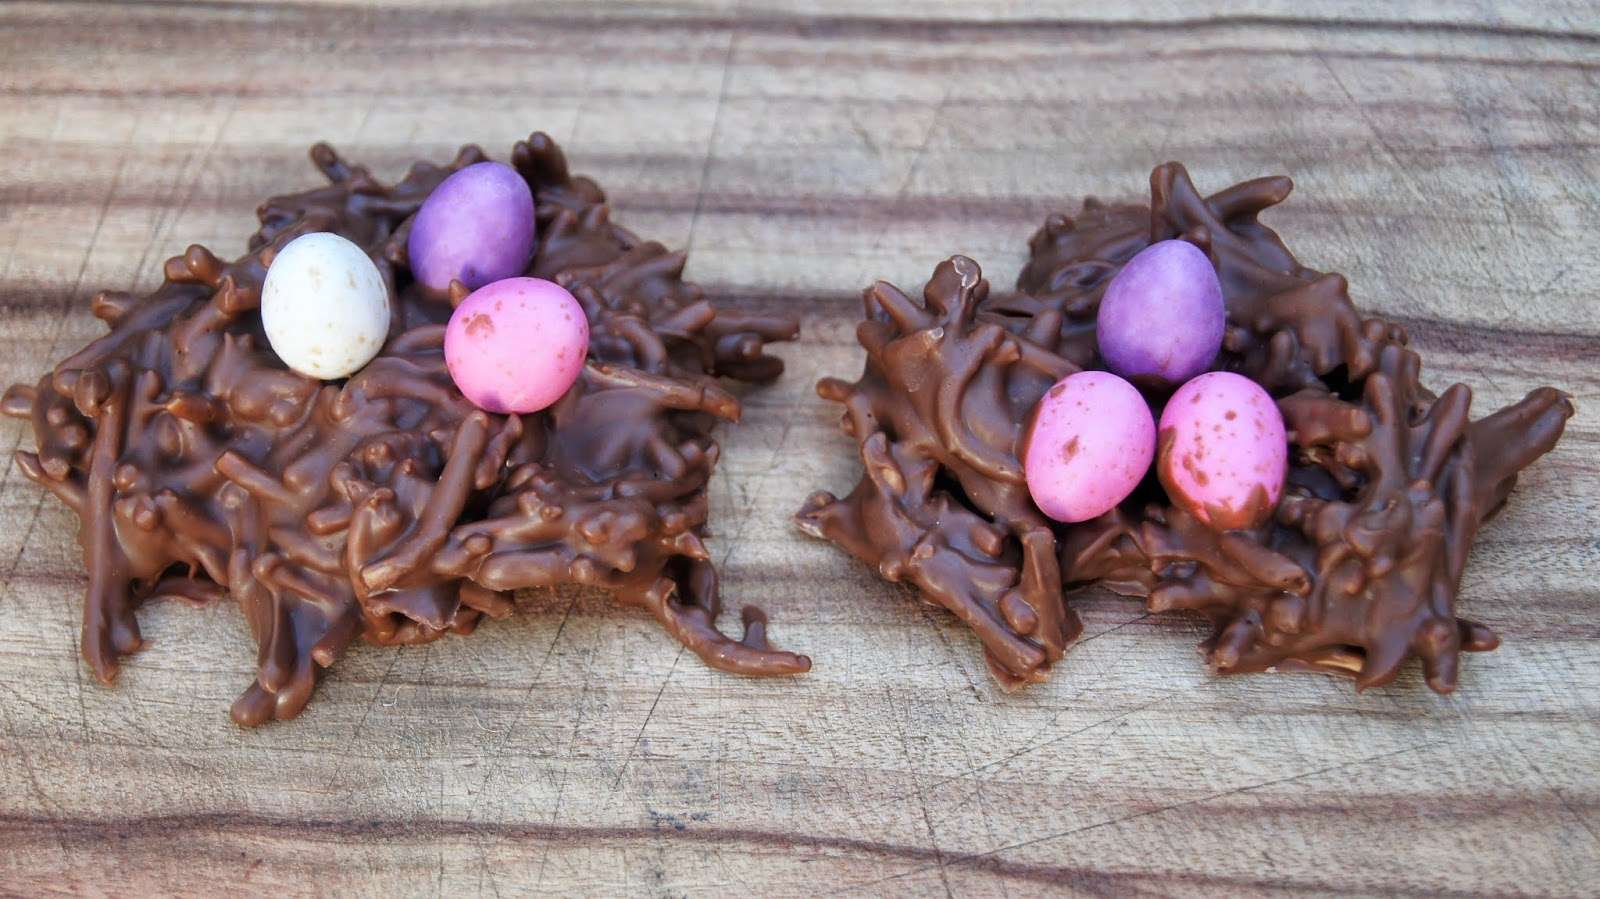 http://froggooseandbear.blogspot.com.au/search/label/chocolate%20easter%20nest